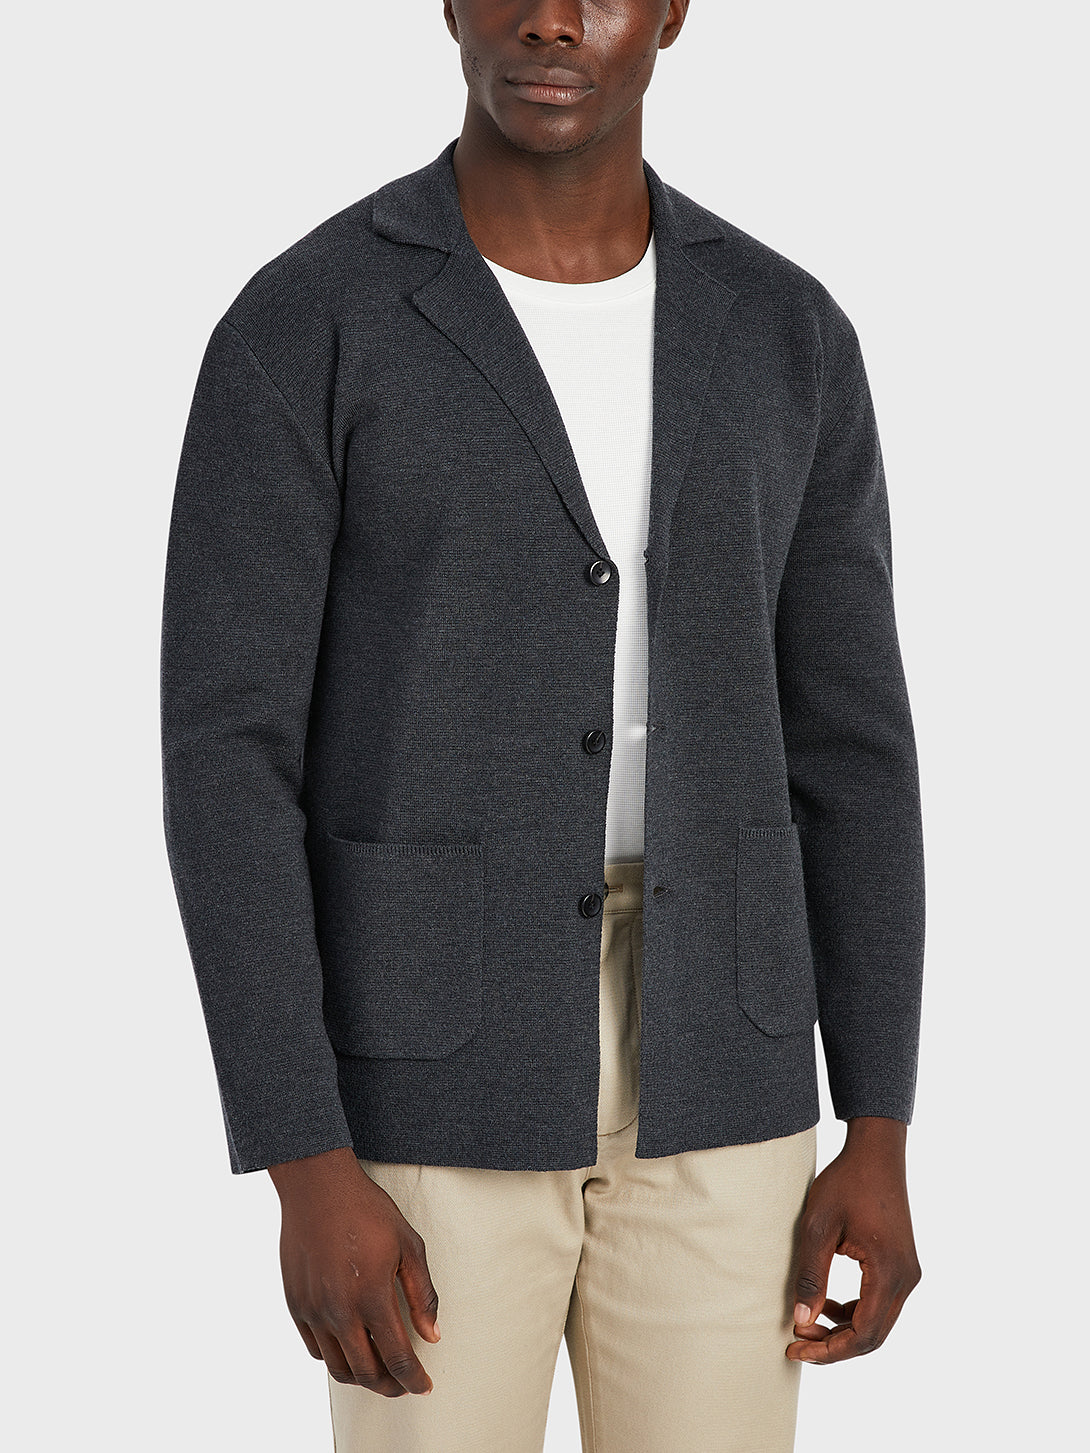 ONS Clothing Men's Cole wool cardigan in CHARCOAL